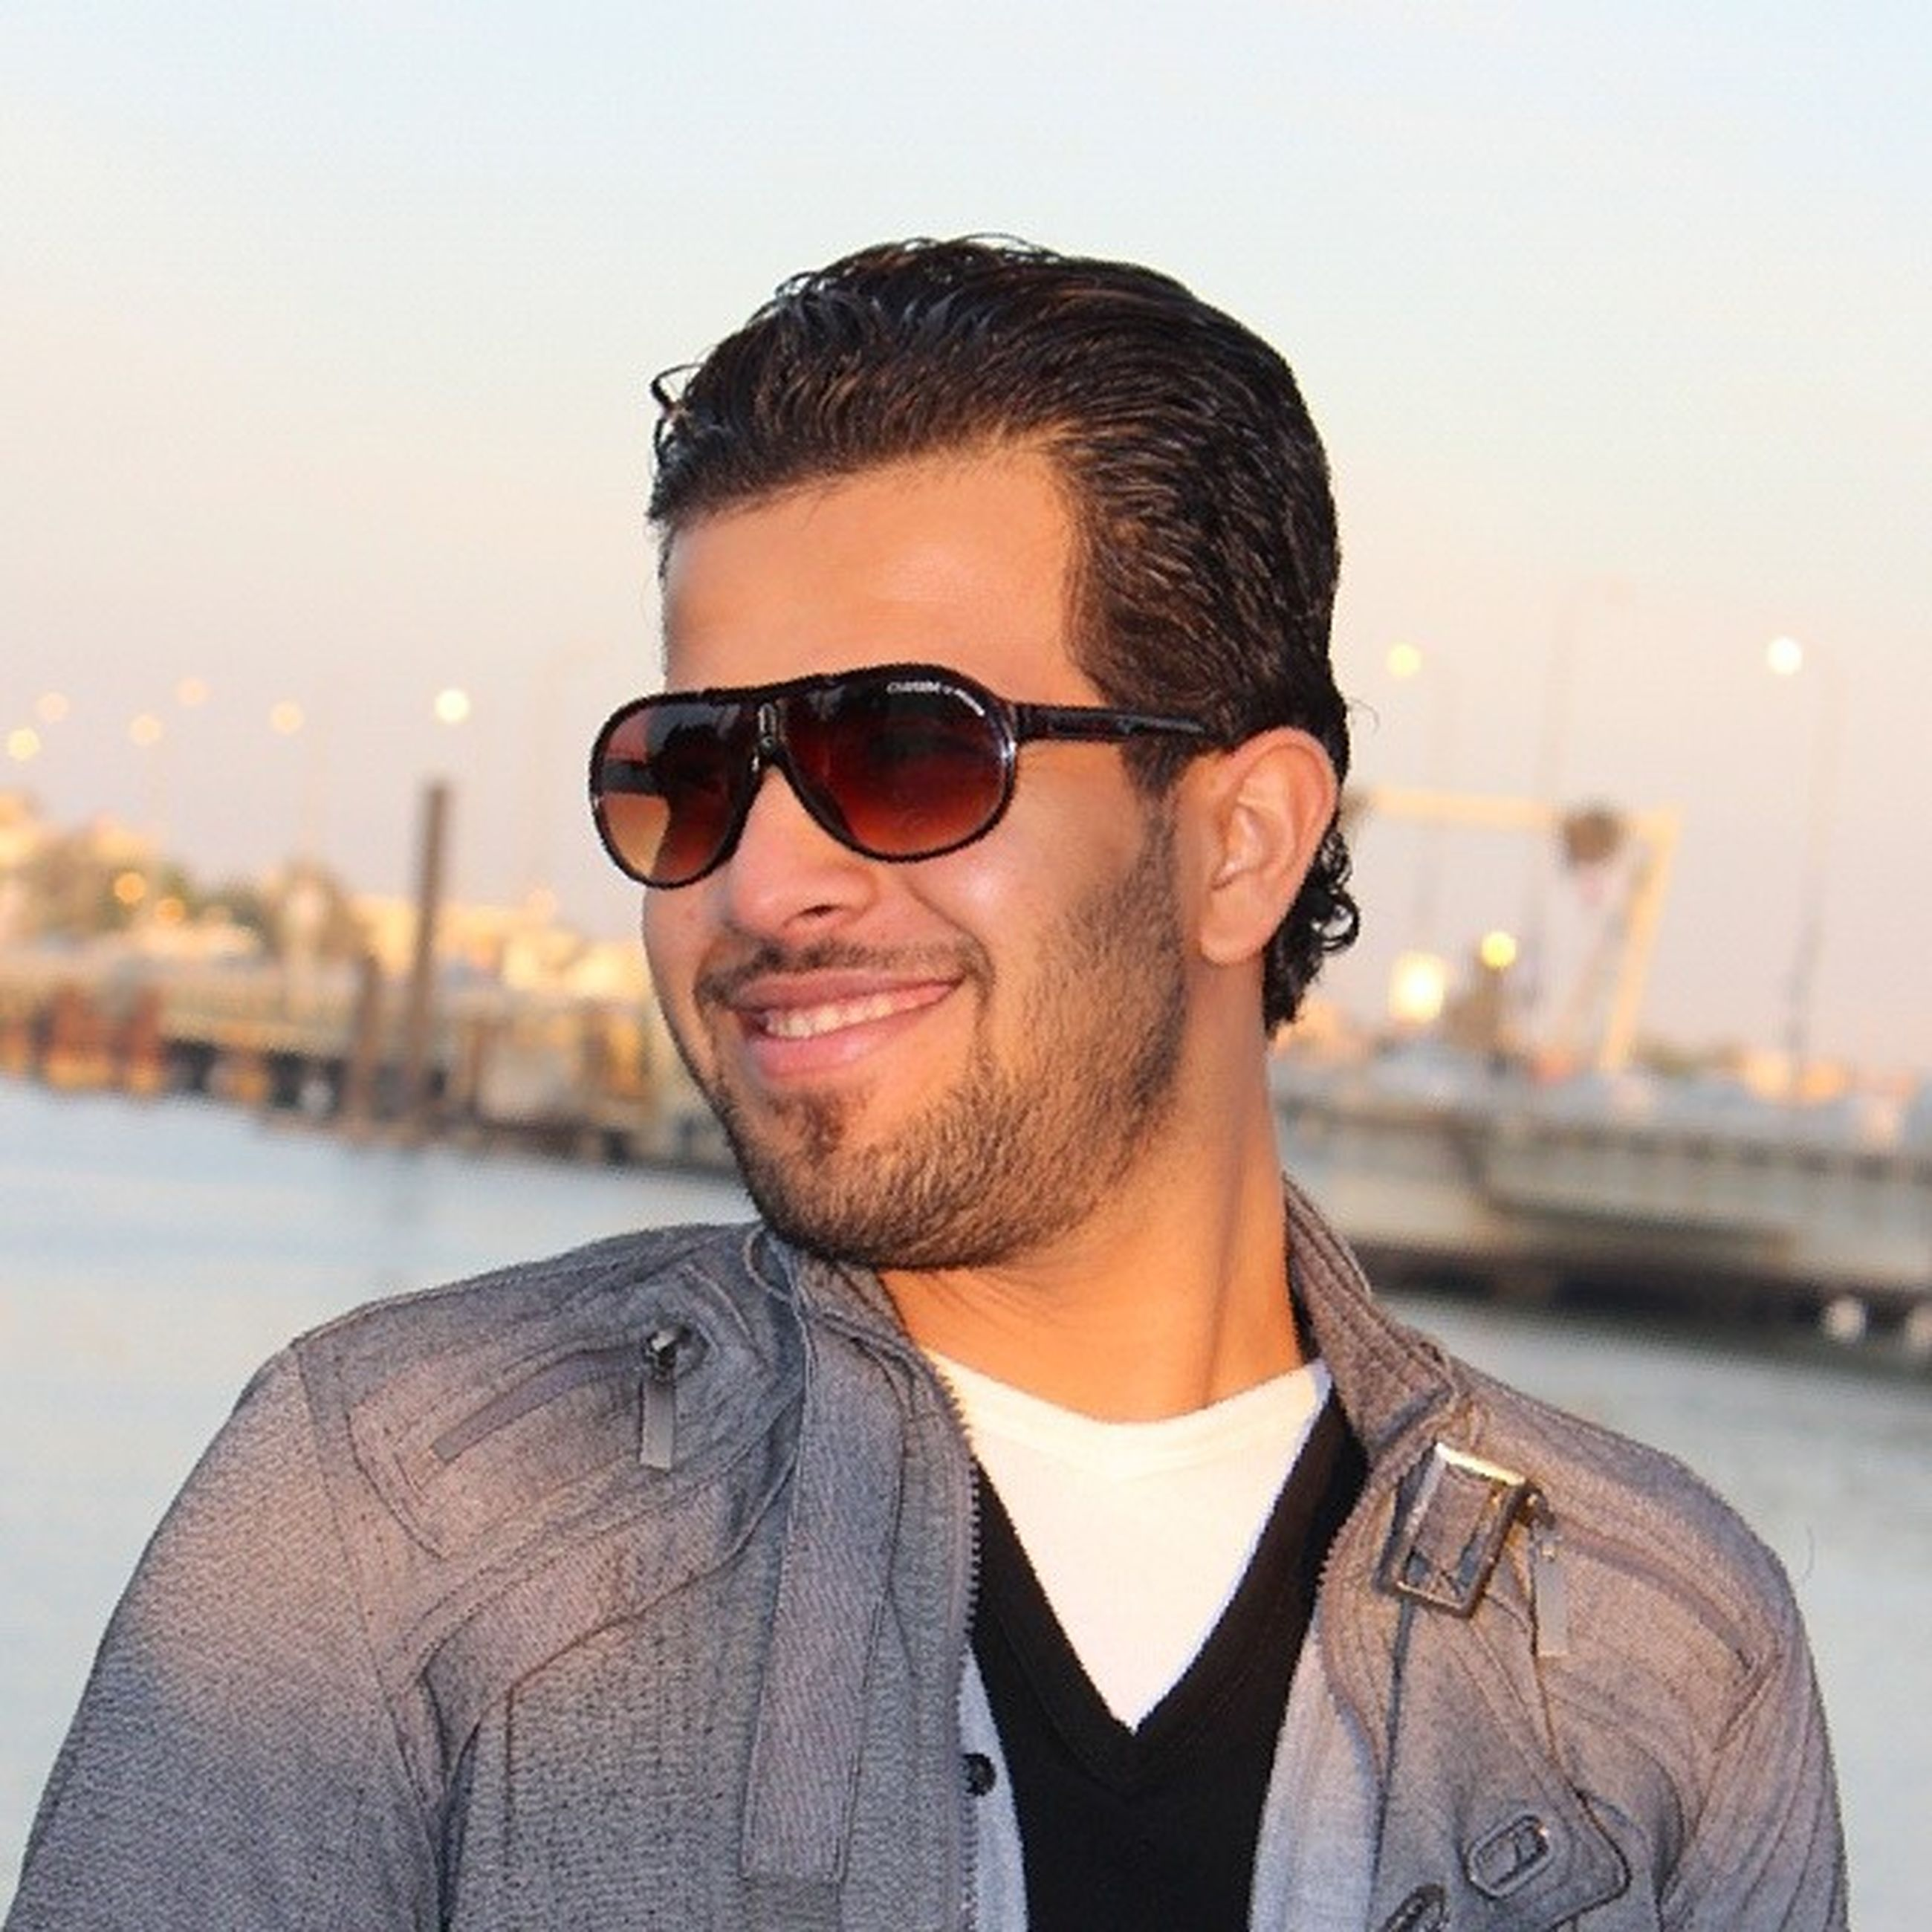 young adult, sunglasses, portrait, lifestyles, young men, looking at camera, person, headshot, leisure activity, front view, focus on foreground, head and shoulders, casual clothing, mid adult men, handsome, mid adult, smiling, close-up